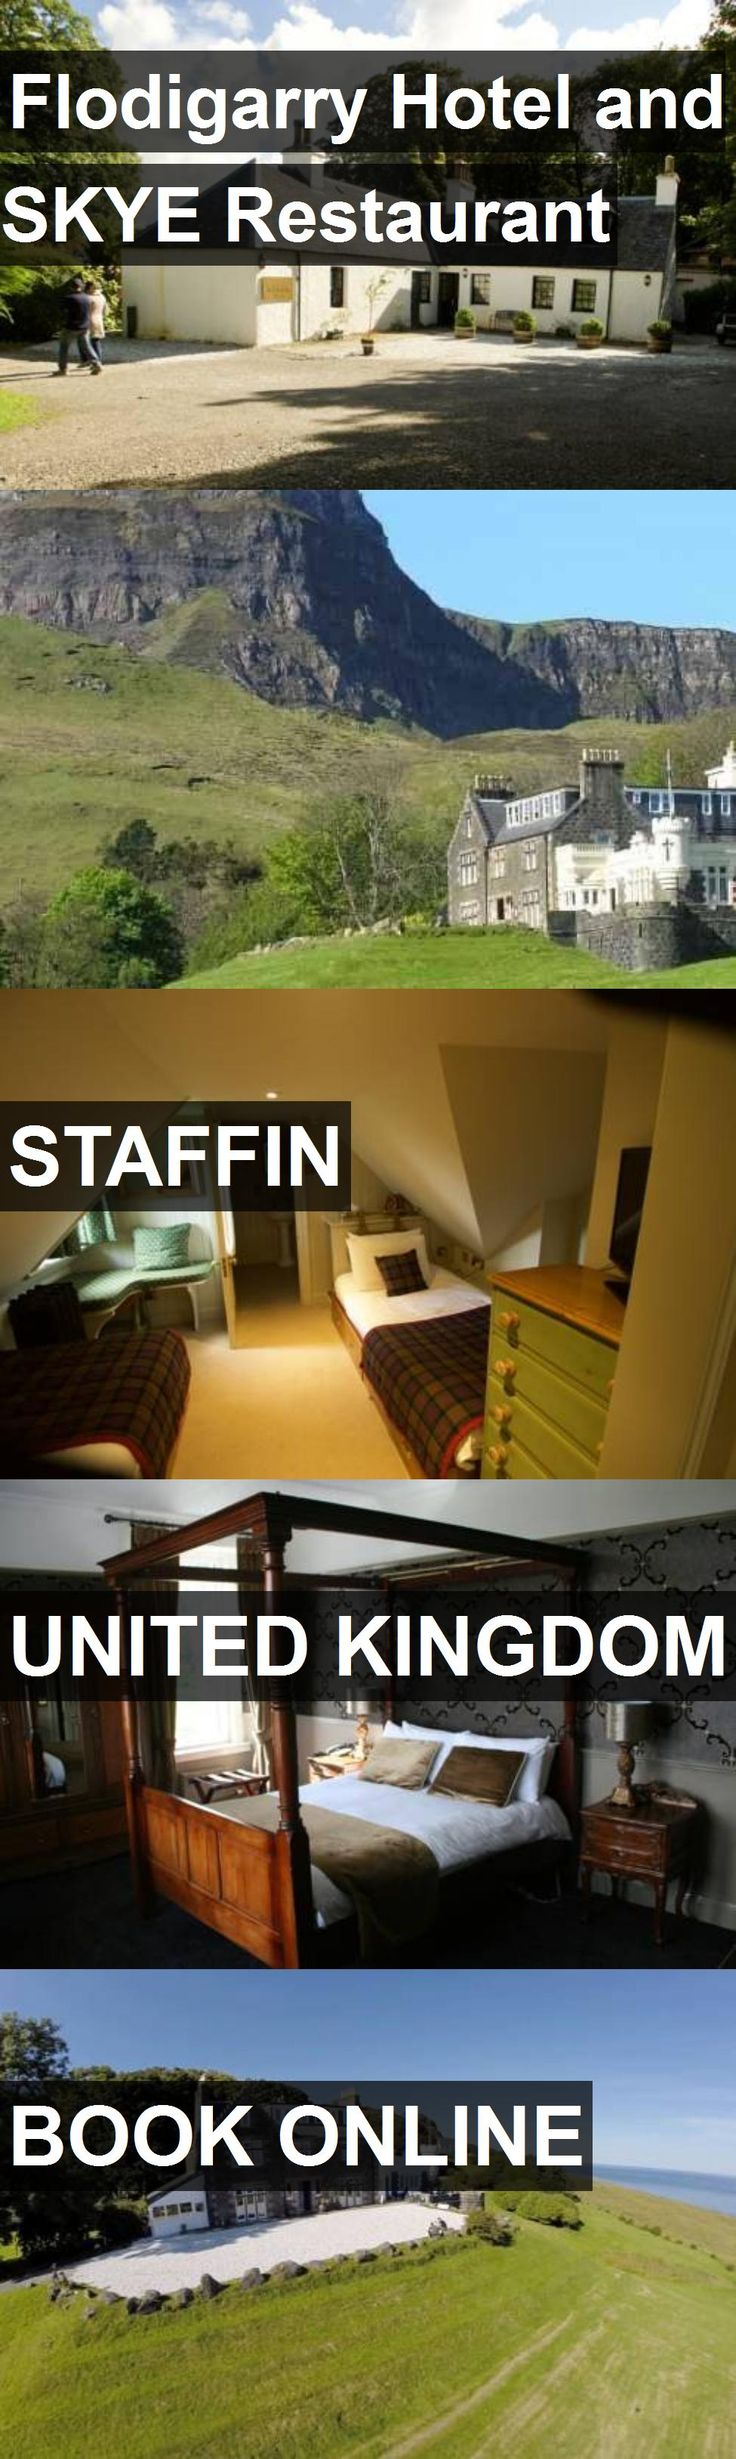 Hotel Flodigarry Hotel and SKYE Restaurant in Staffin, United Kingdom. For more information, photos, reviews and best prices please follow the link. #UnitedKingdom #Staffin #hotel #travel #vacation